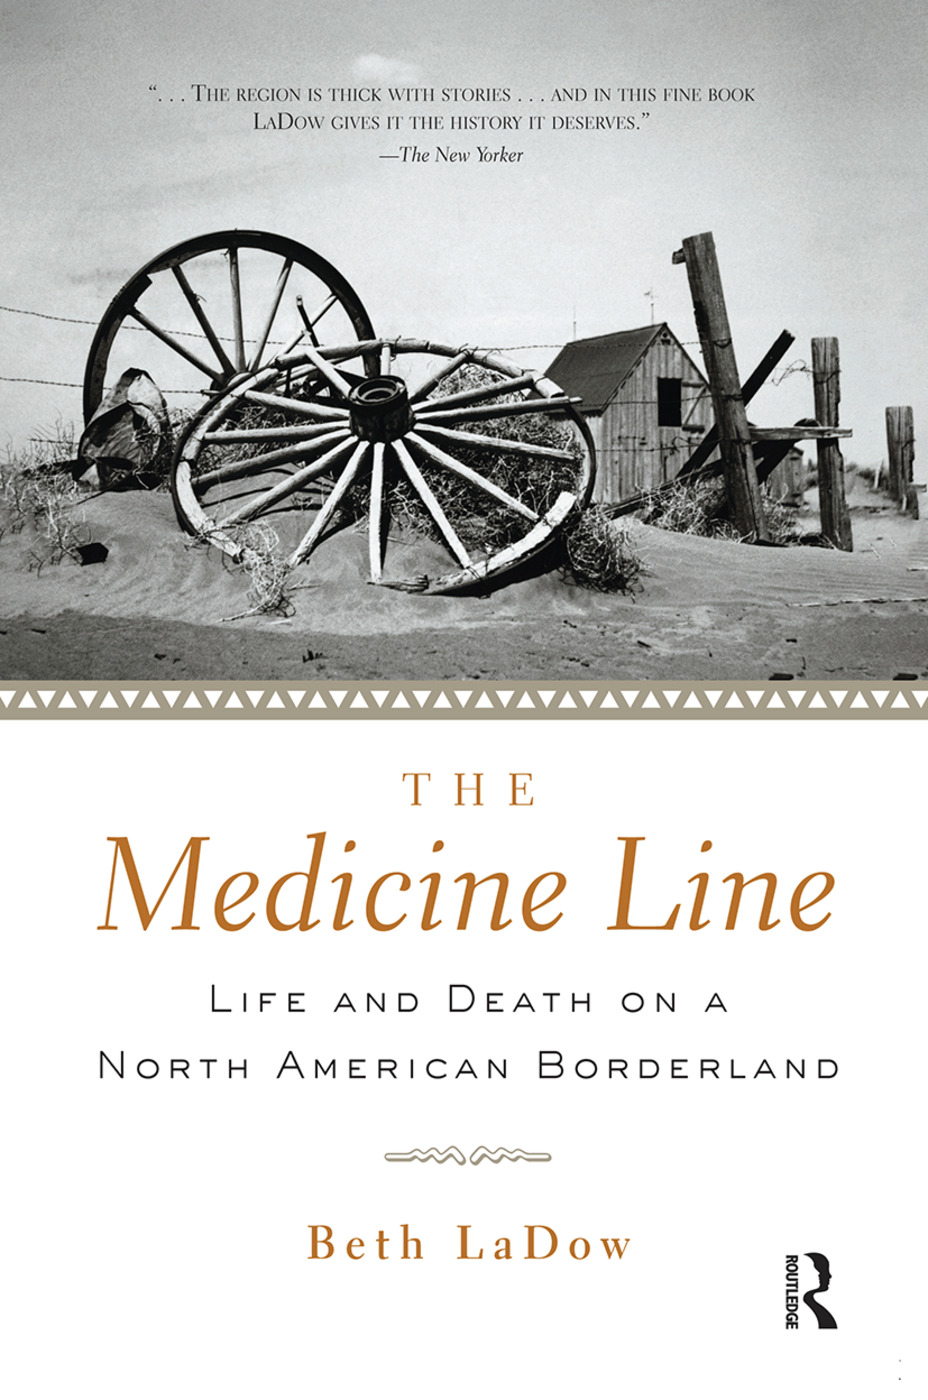 The Medicine Line: Life and Death on a North American Borderland (Paperback) book cover